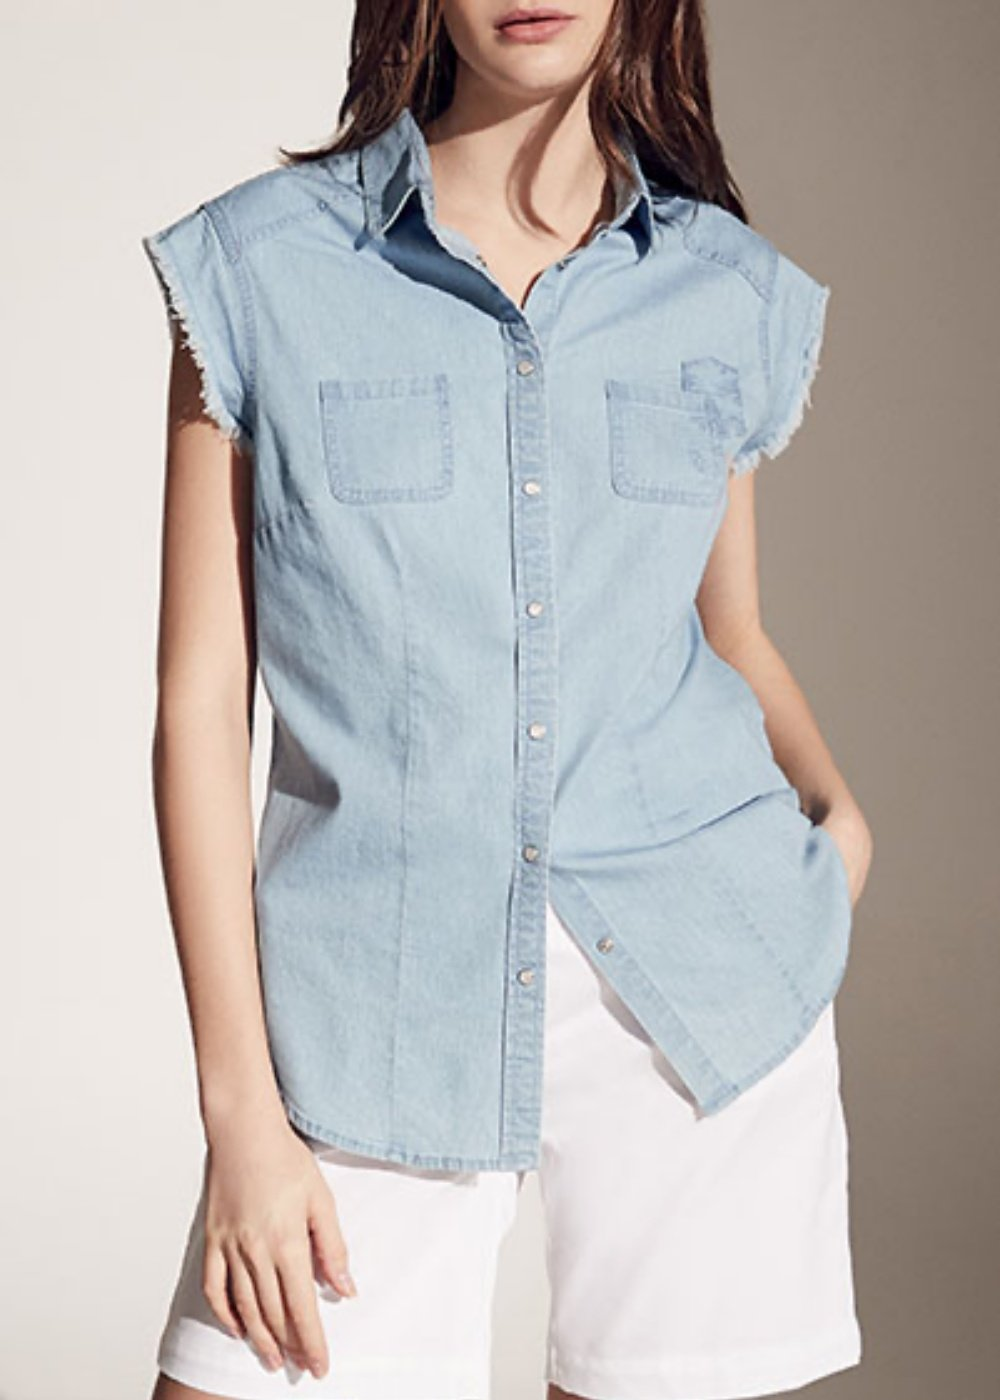 Camicia Candye in denim giro manica - Light Denim - Donna